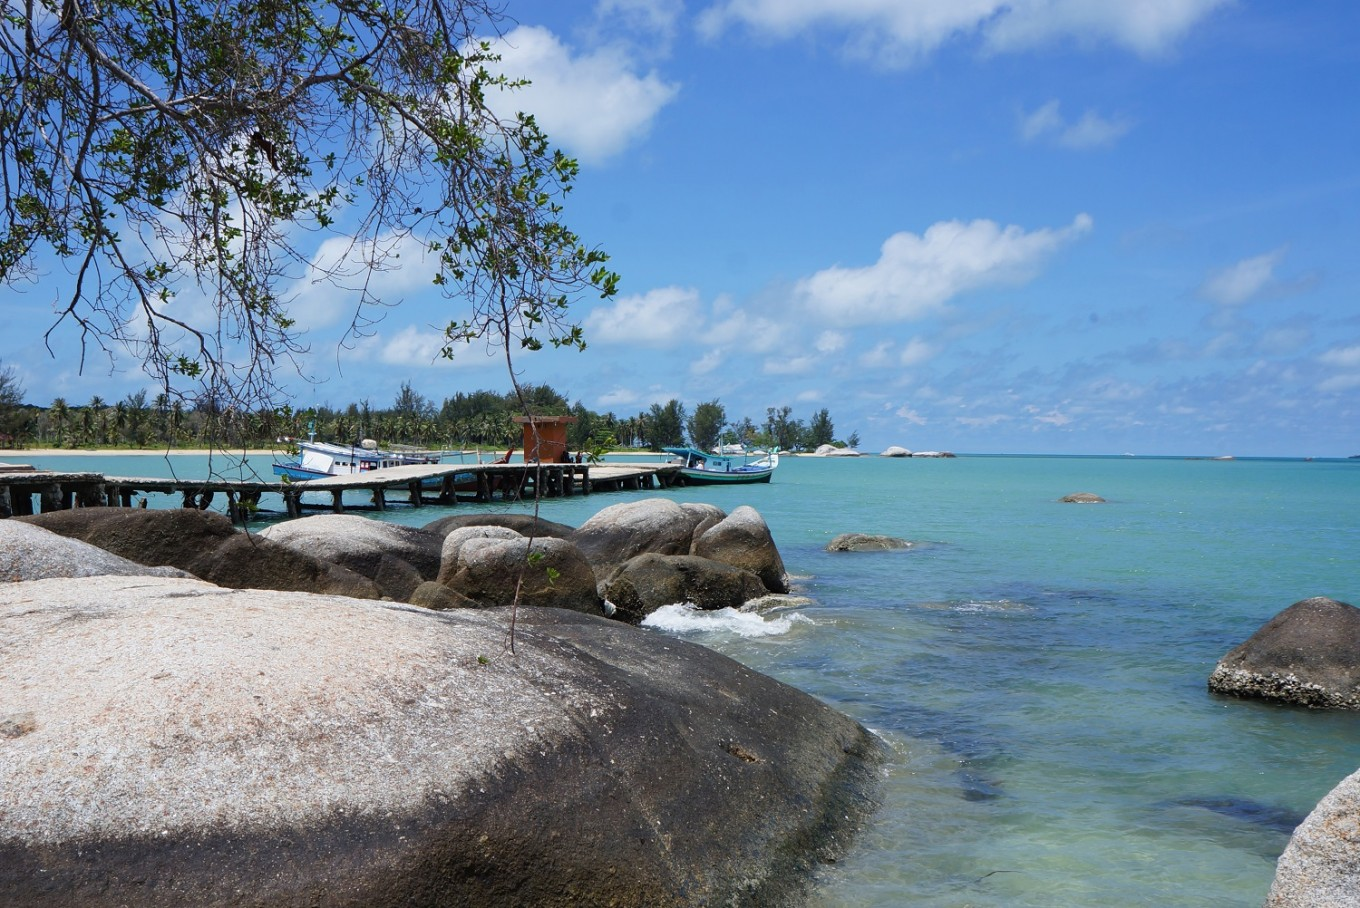 Belitung ripe for nomadic tourism